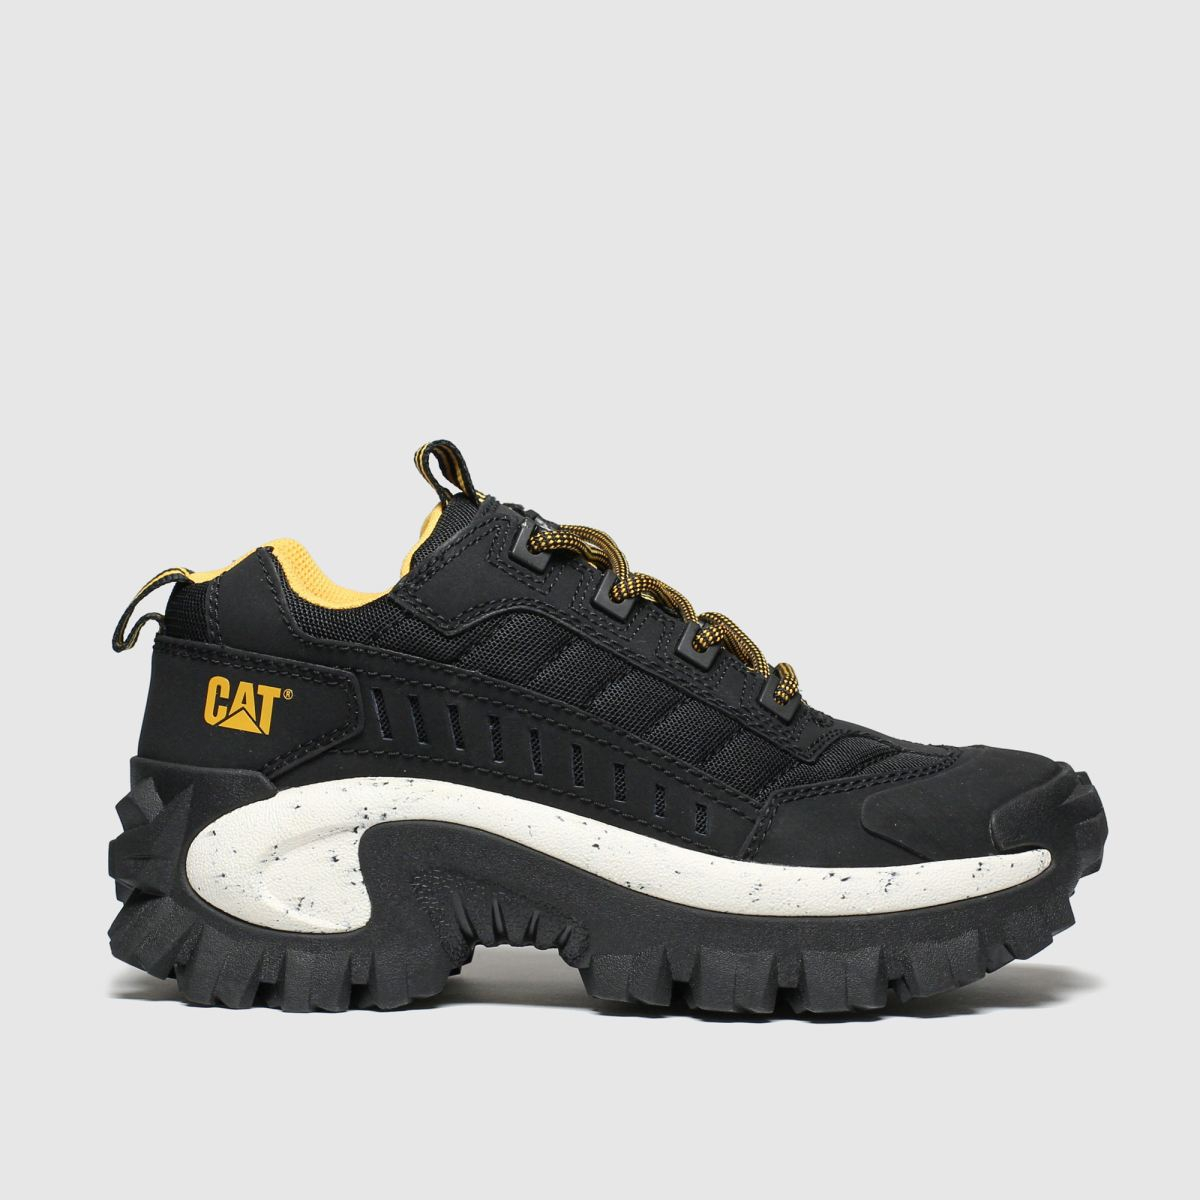 cat-footwear Cat-footwear Black Intruder 1 Trainers